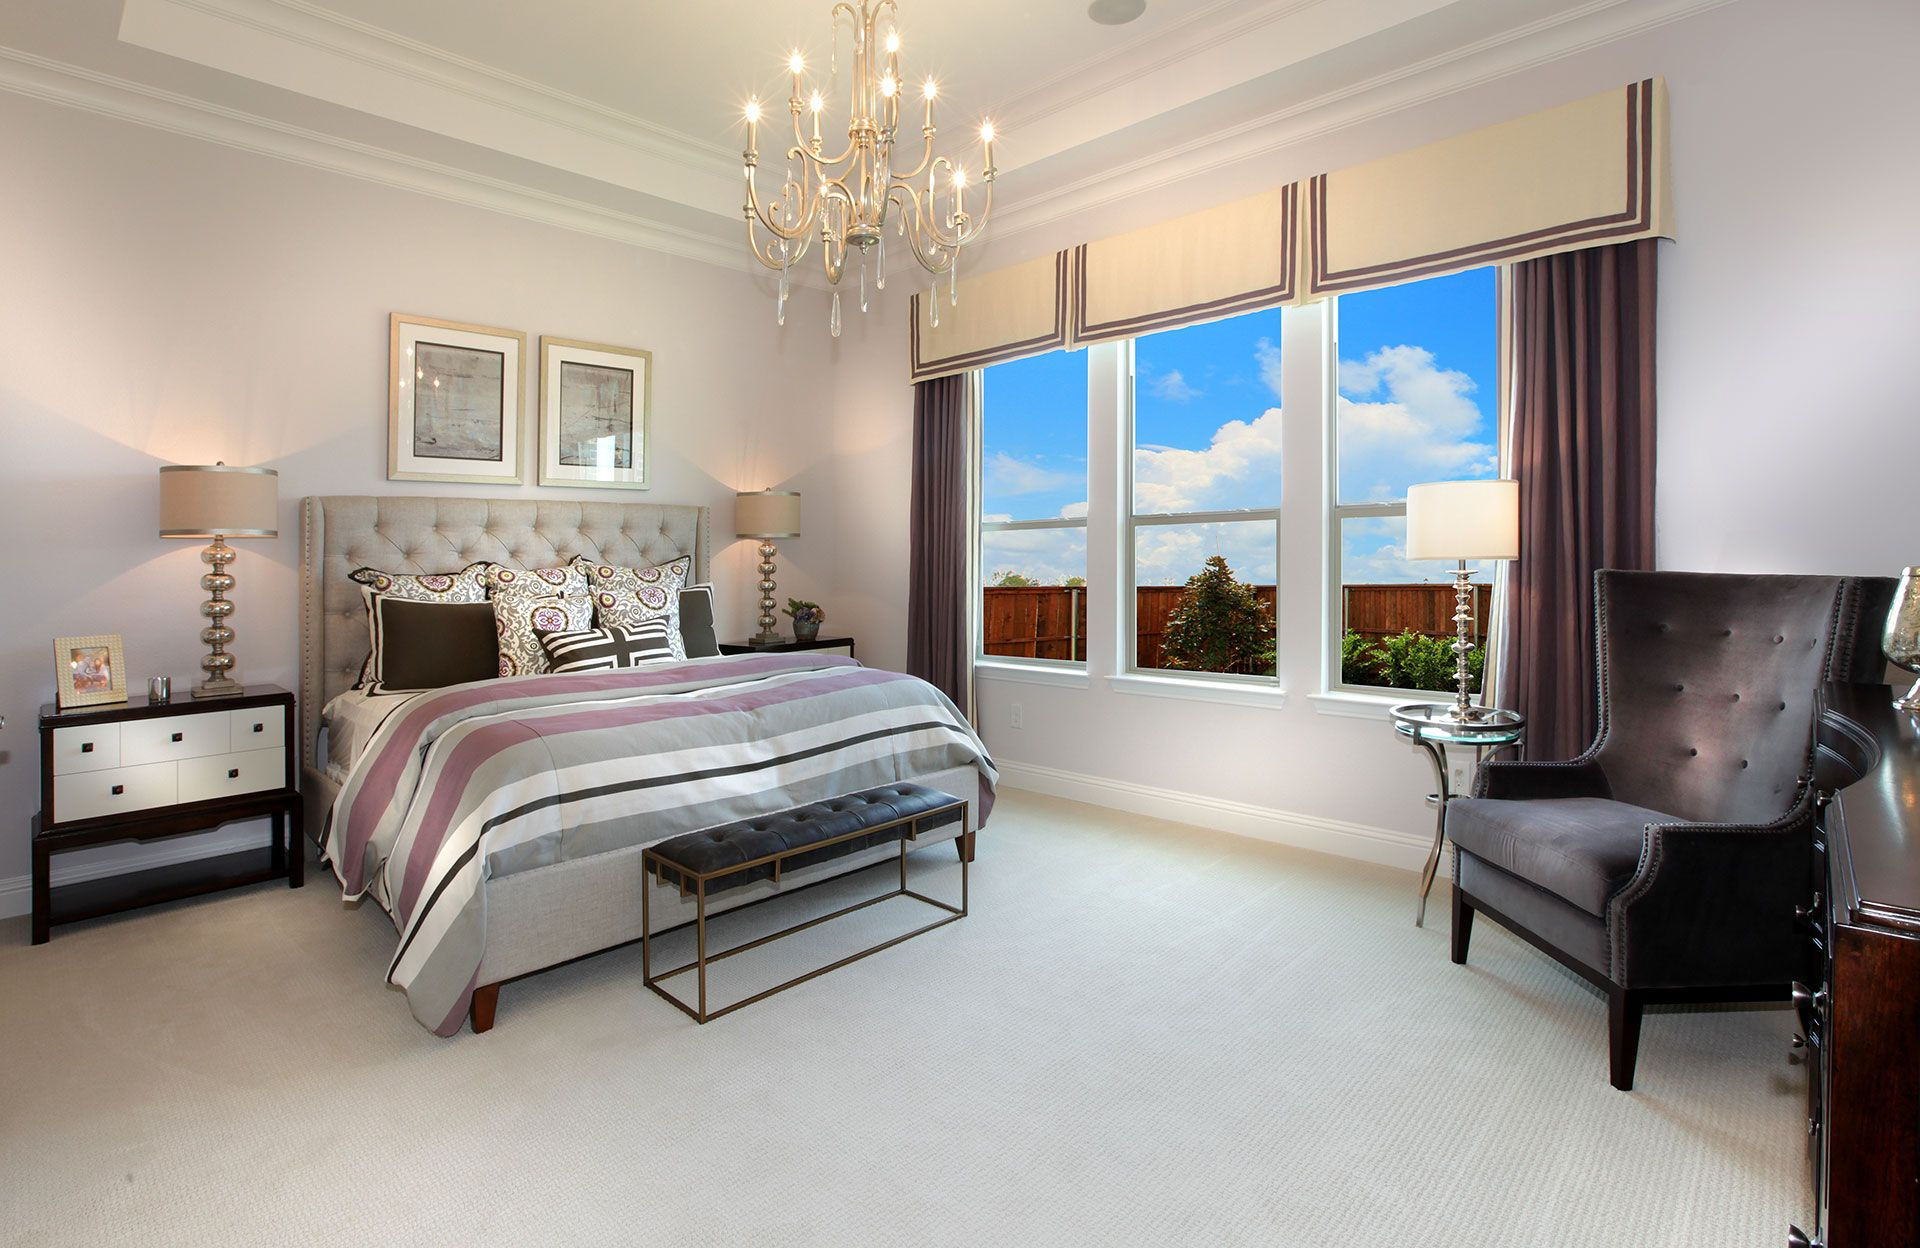 Bedroom featured in the Grayford By Drees Custom Homes in Dallas, TX